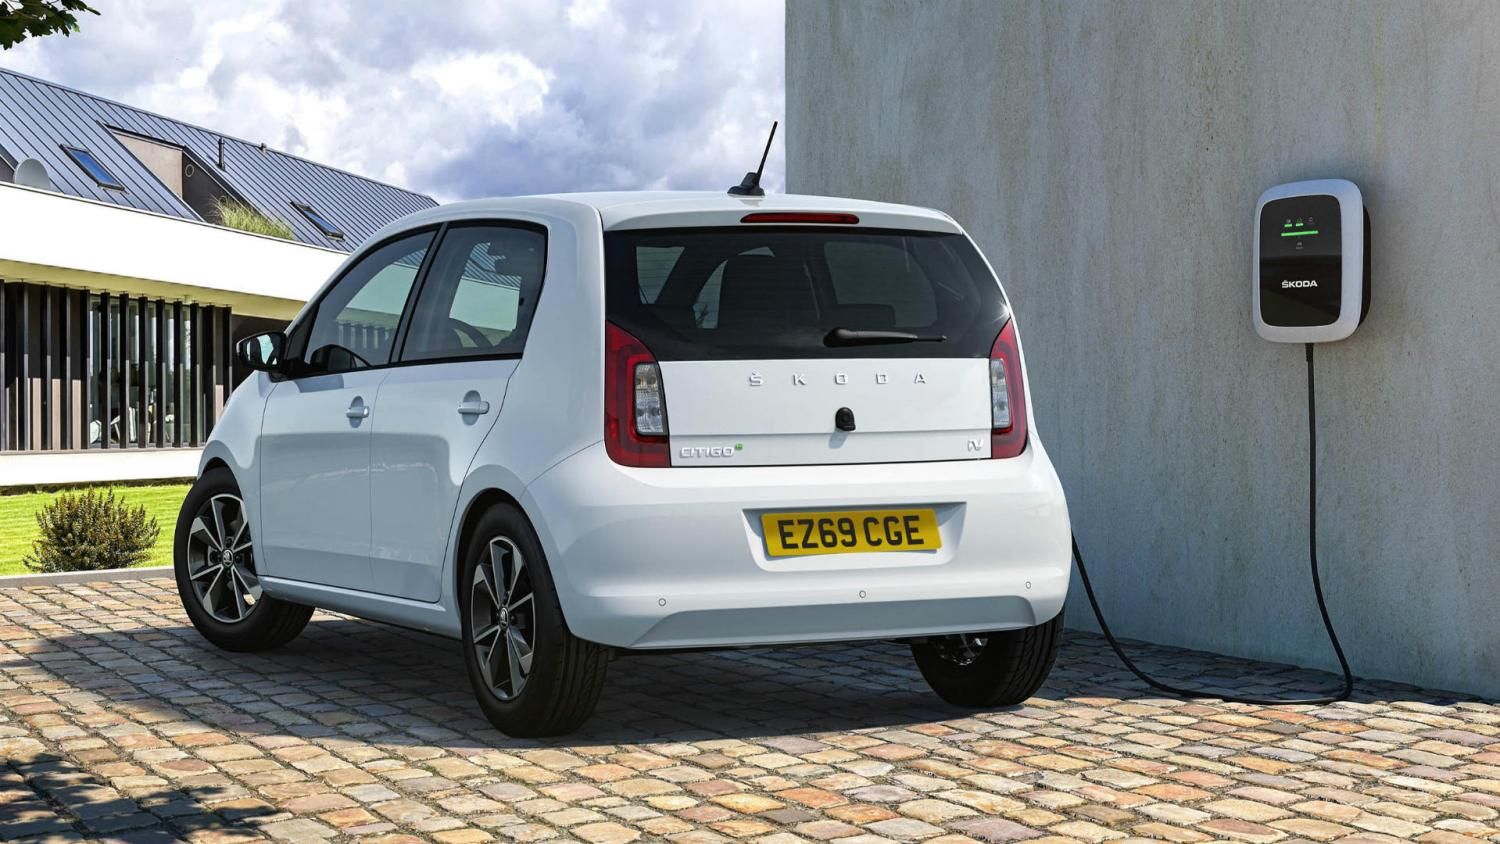 Skoda Citigo electric car prices